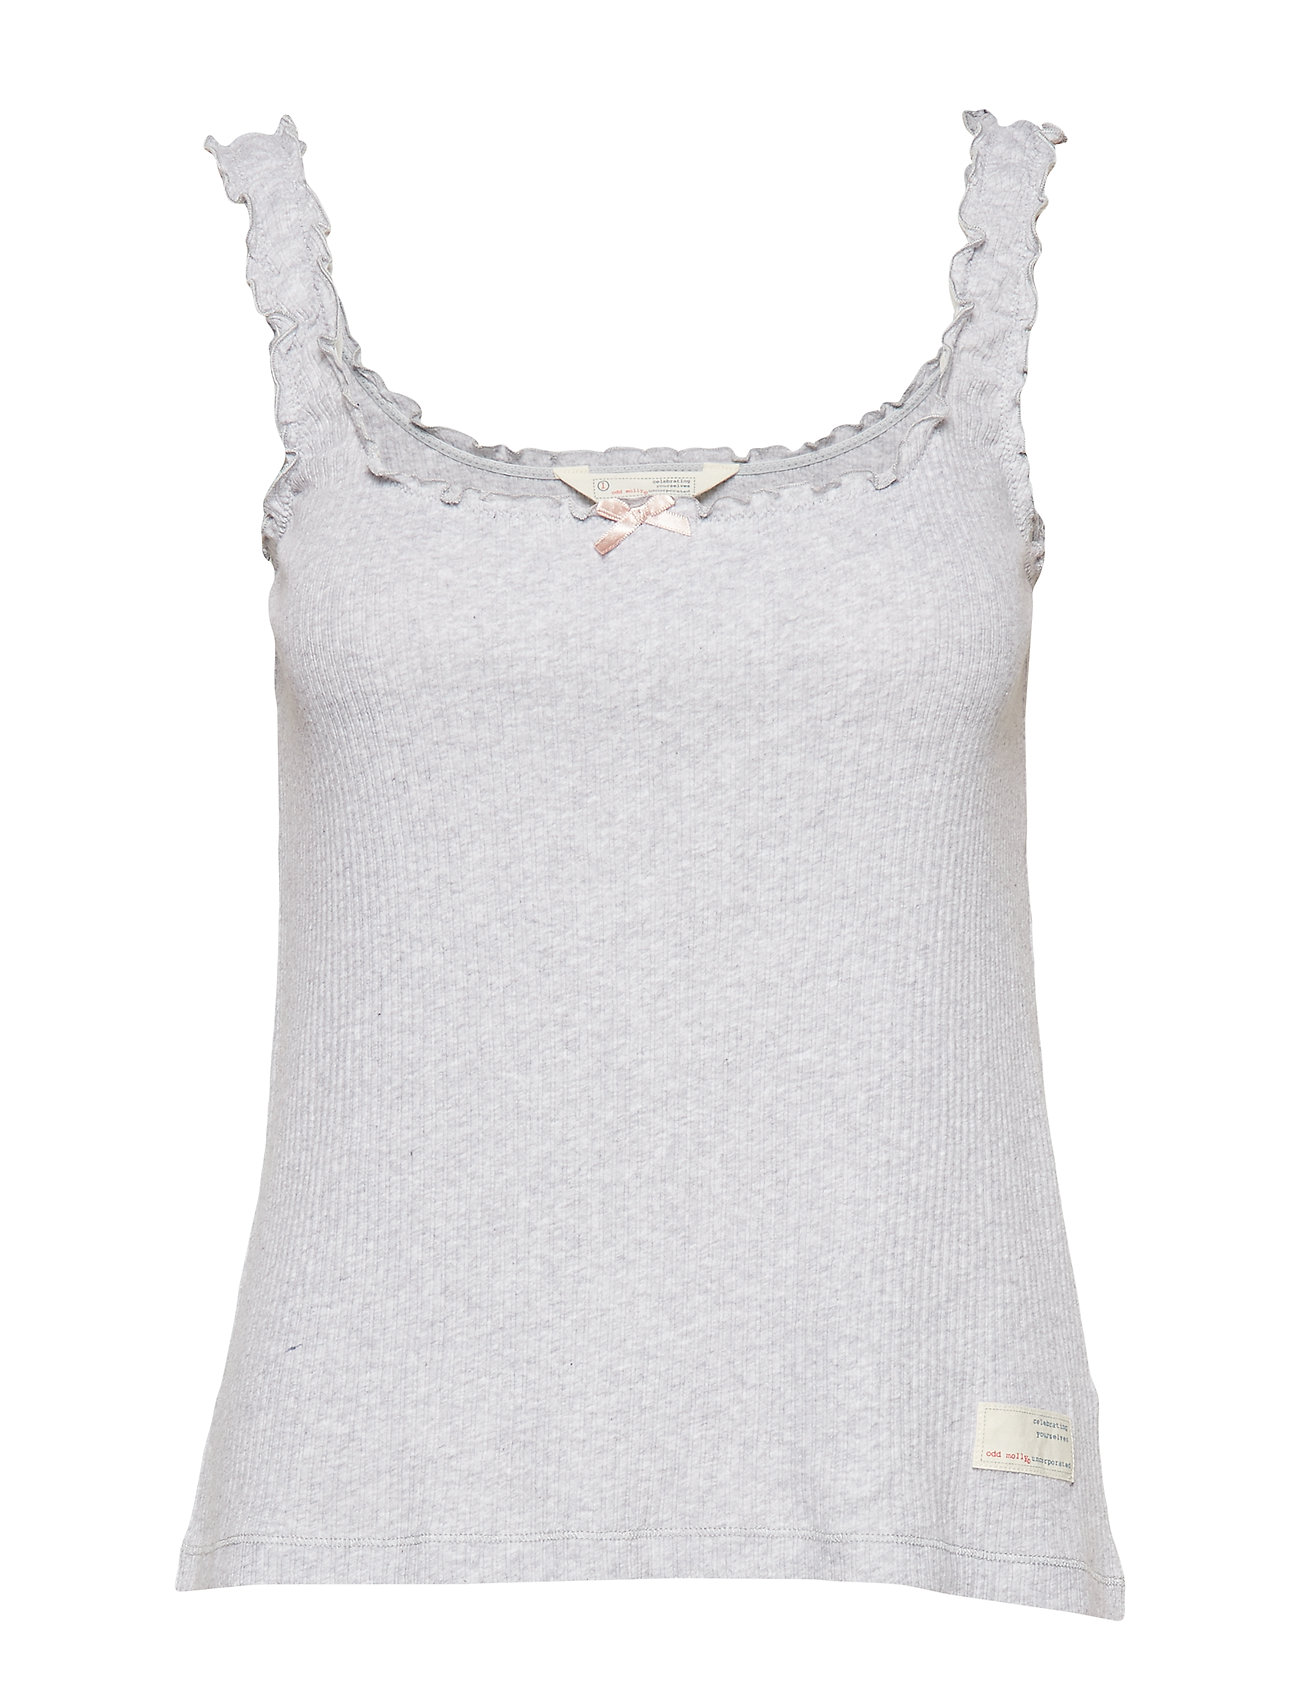 ODD MOLLY zoom out tanktop